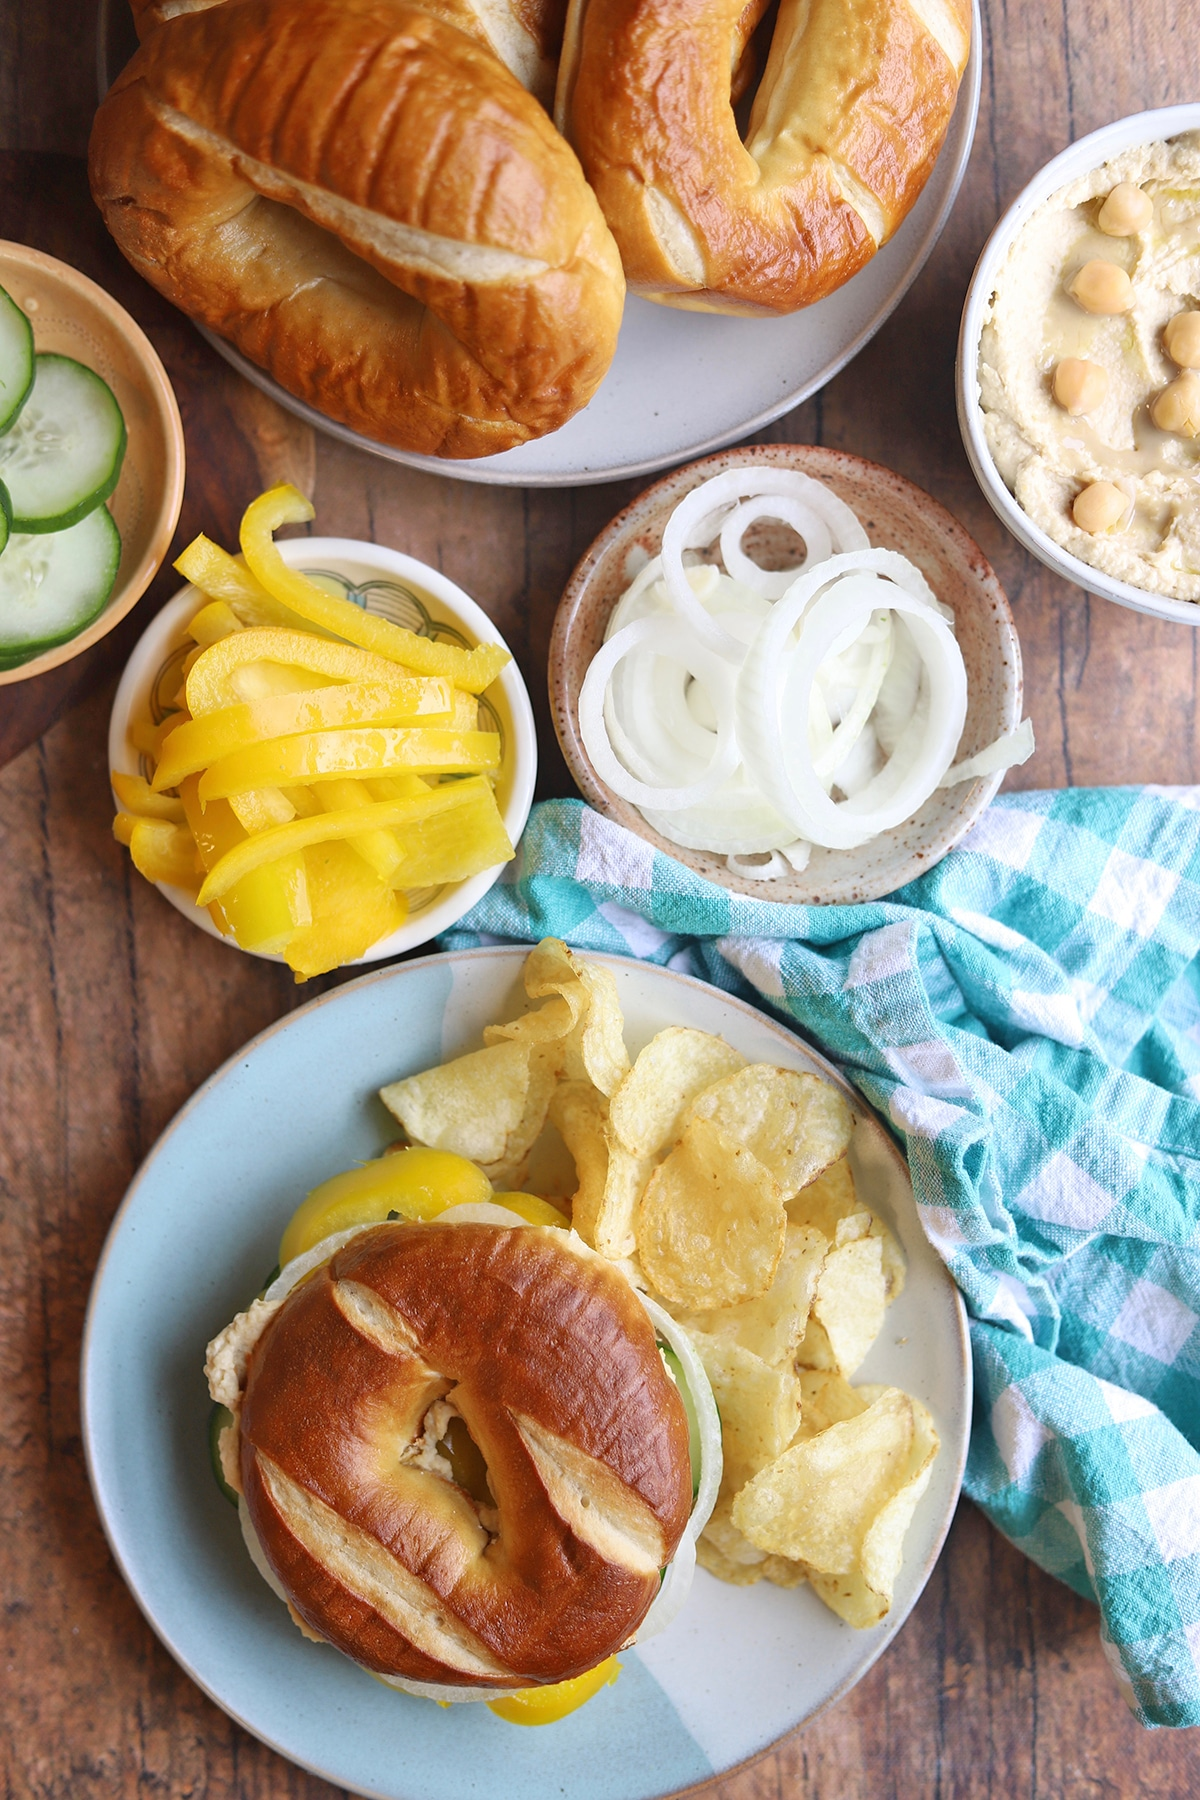 Table with bagel sandwich, potato chips, and ingredients.